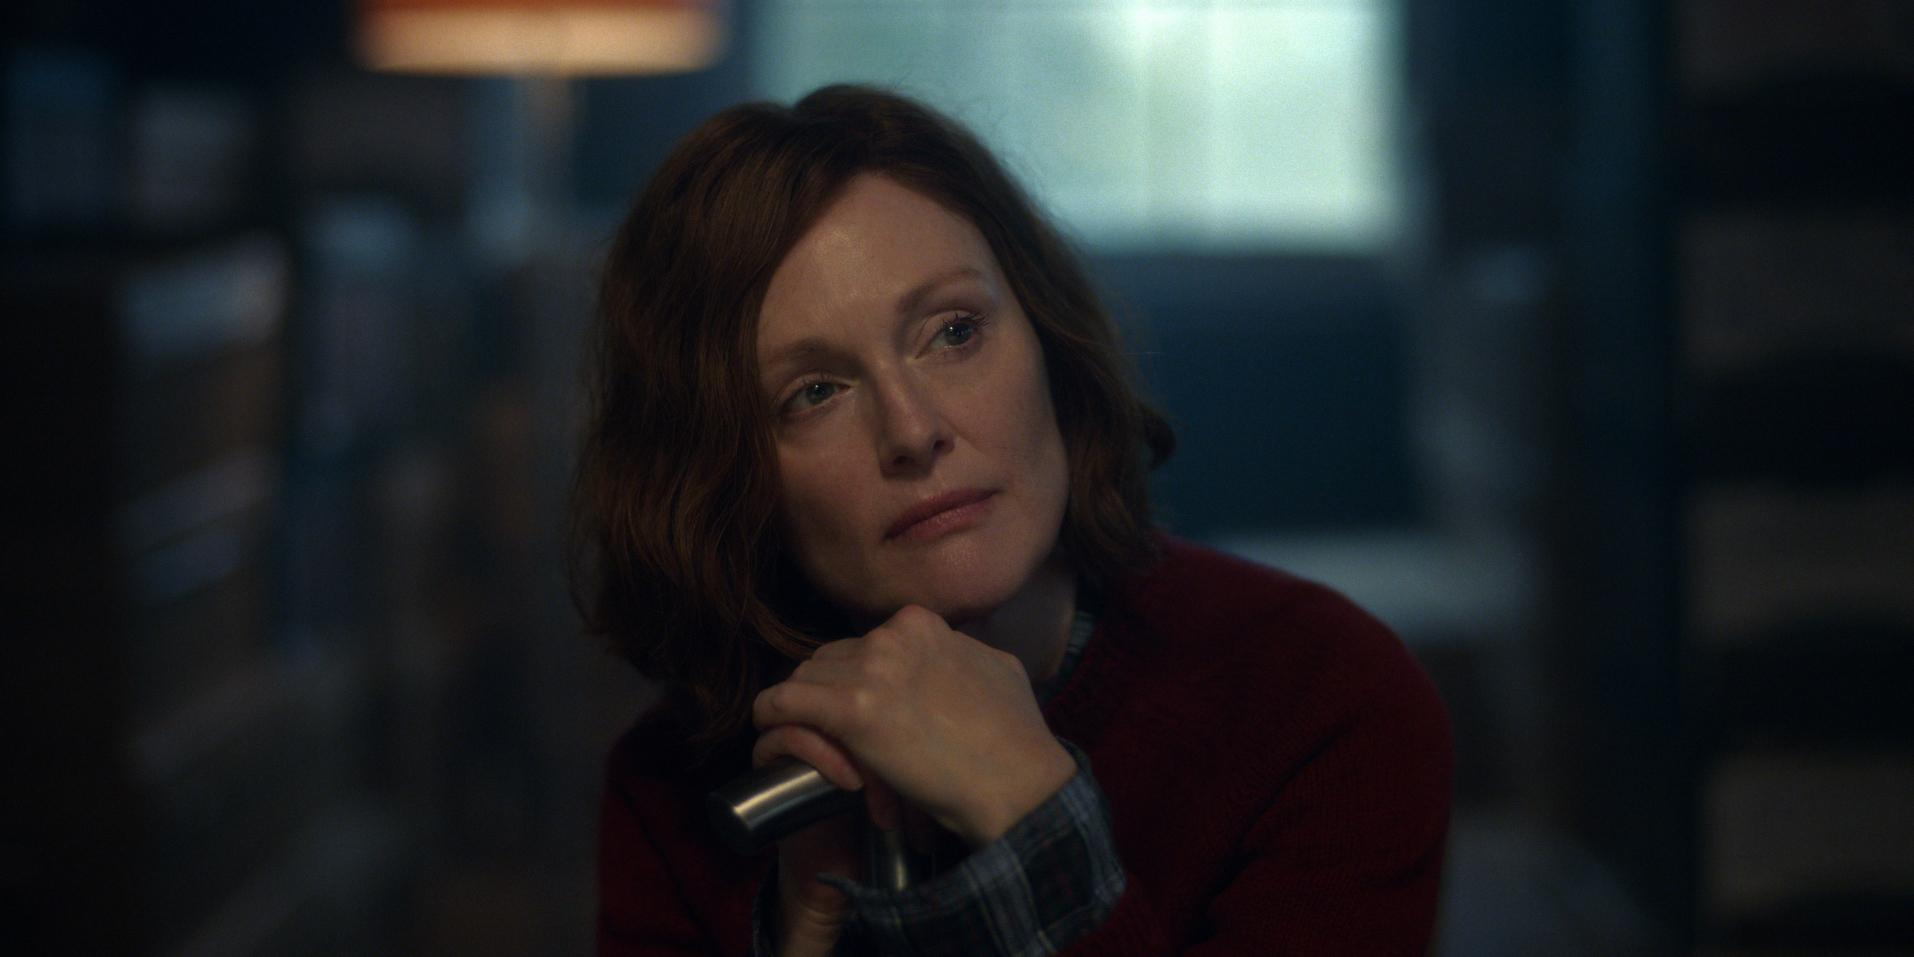 julianne moore examines anxiety big fan of therapy liseys story